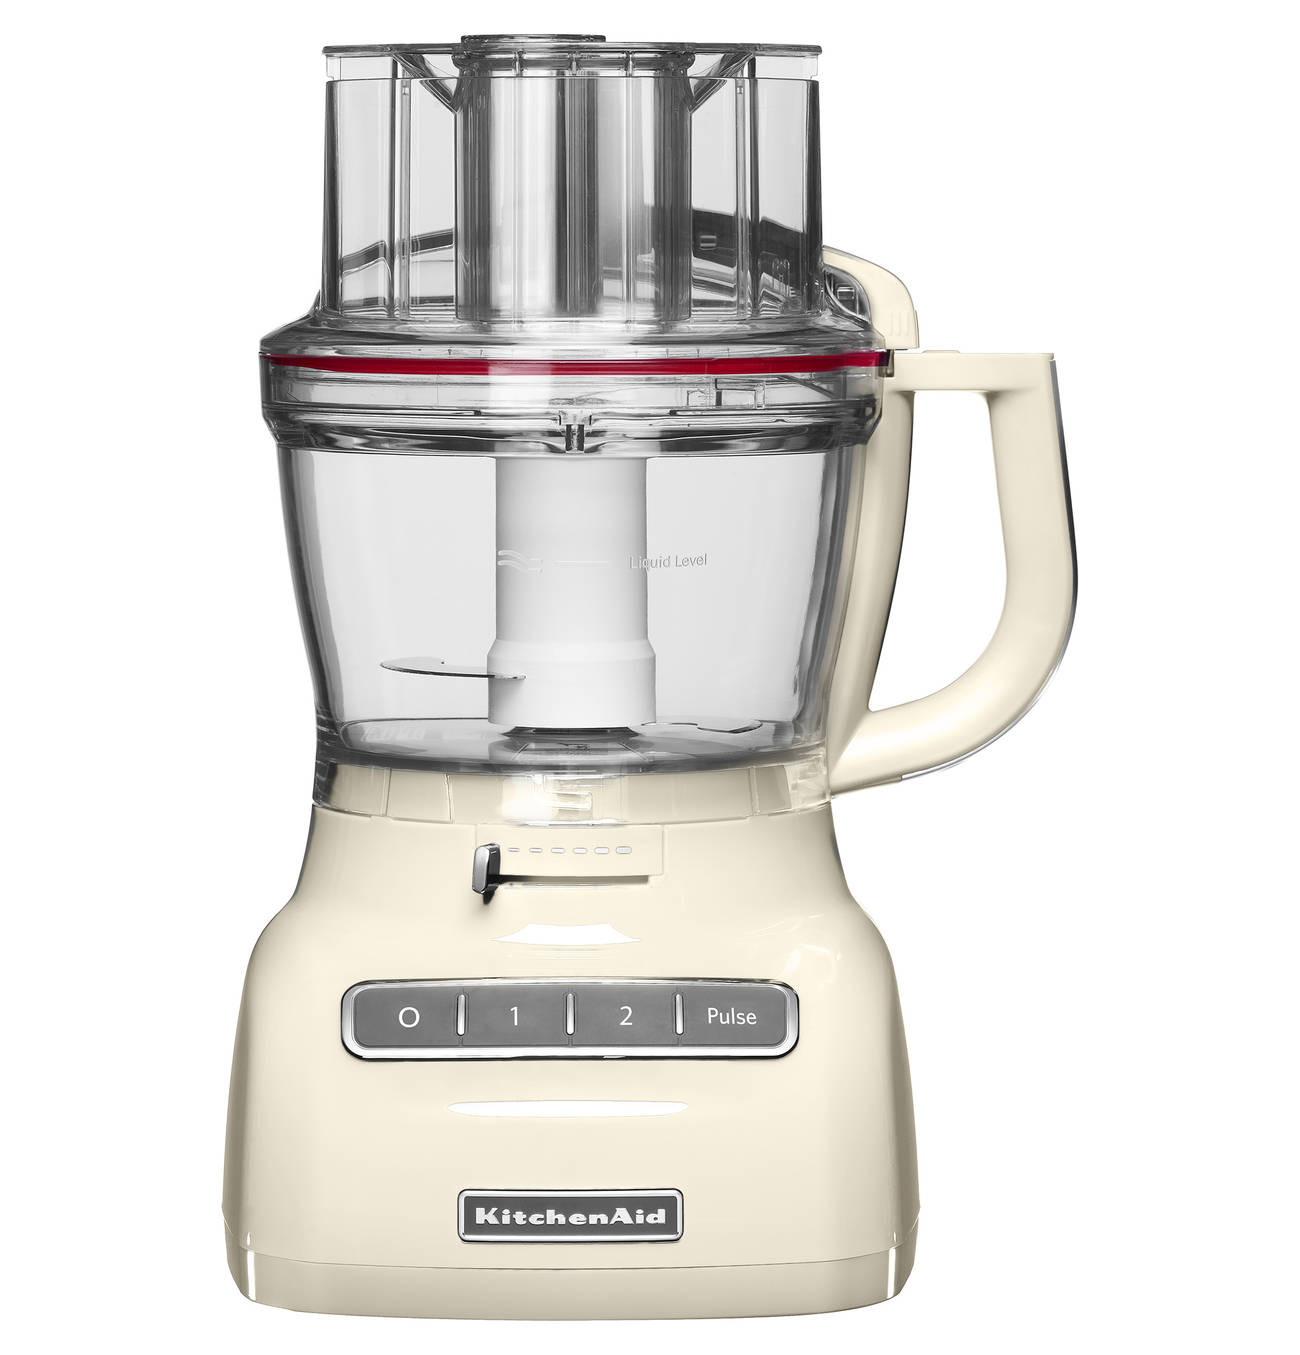 Küchenmaschine Bosch Vs Kitchenaid 3 1 L Food Processor In 2019 Products Kitchenaid